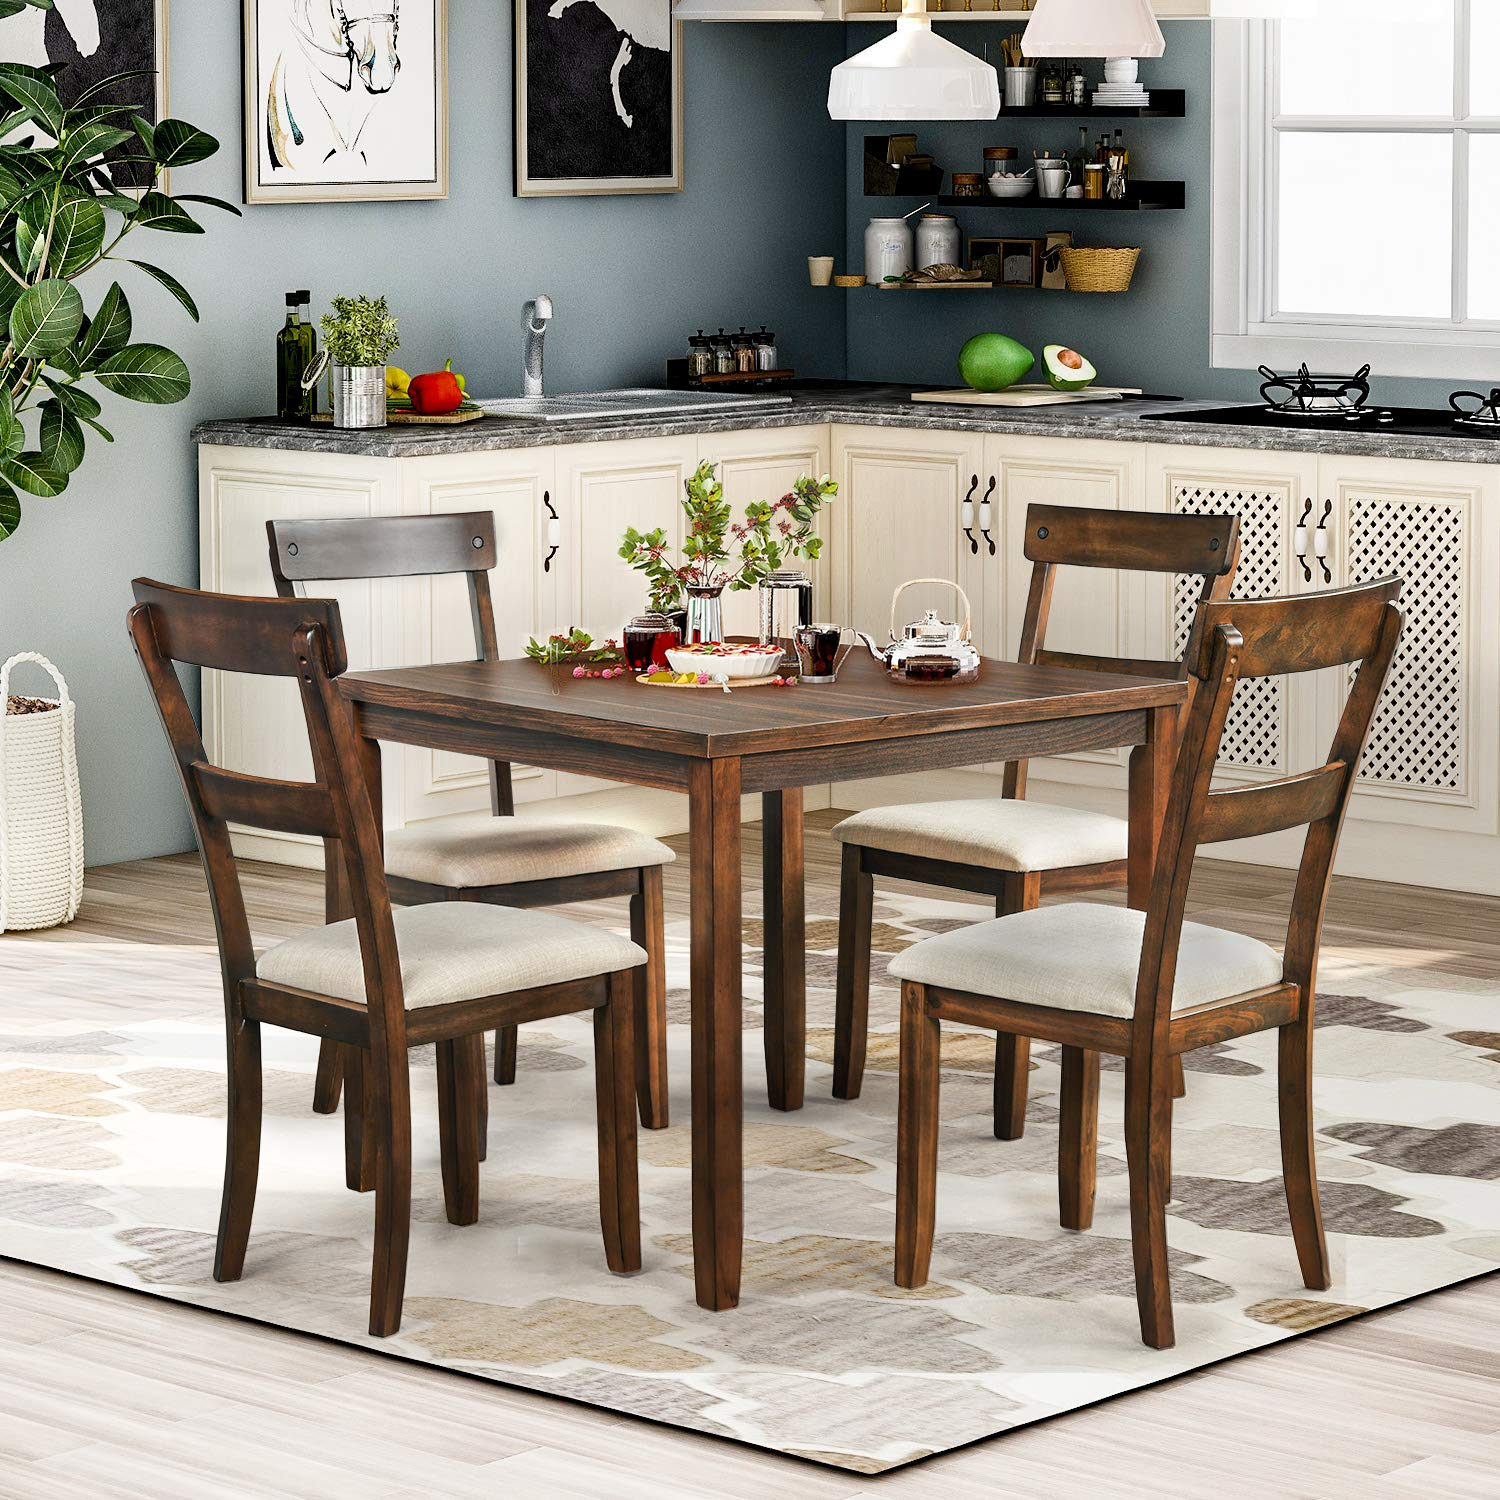 P PURLOVE 8 Piece Dining Table Set Rustic Wood Kitchen Table and 8 Chairs 8  Piece Wooden Dining Set for Kitchen Dining Room (American Walnut)